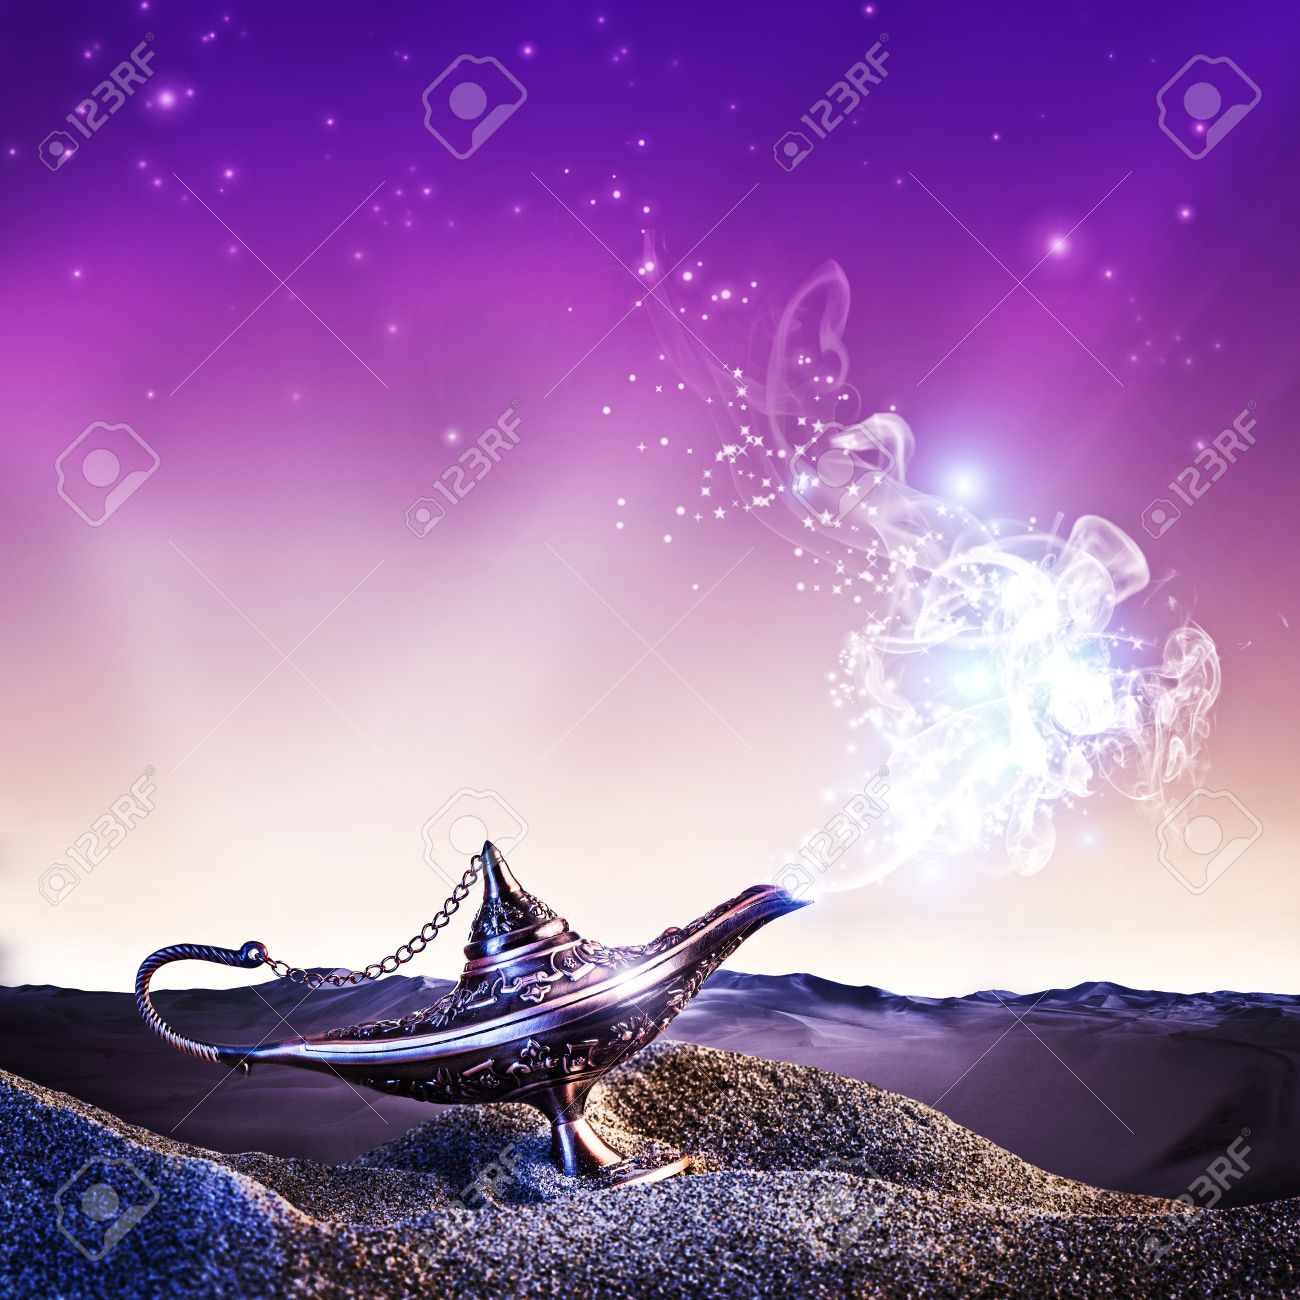 Magic Aladdin Lamp In The Desert At Night Time Stock Photo, Picture ... for Aladdin Desert Background  131fsj